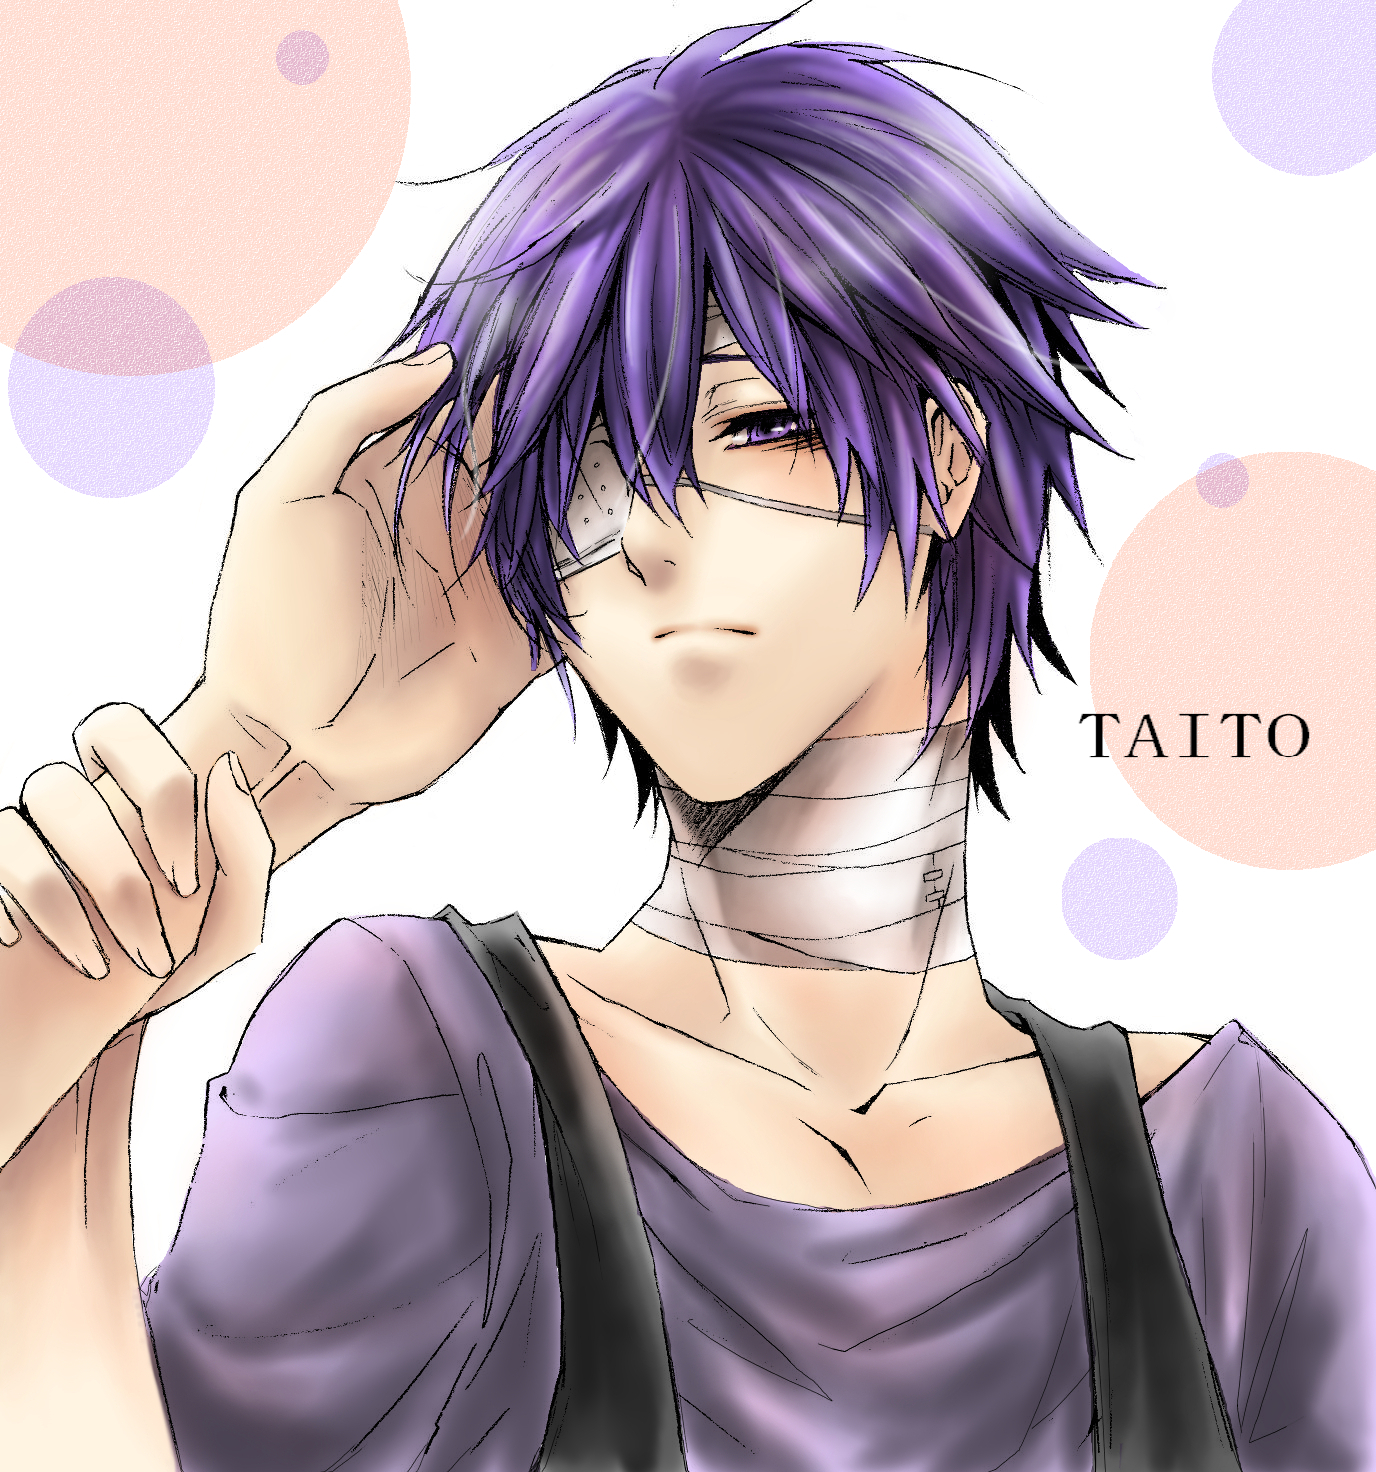 Taito Vocaloid fanart violet haired boy with bangades on his neck and a medical eyepatch on his right eye yandere Kaito purple haired anime boy cute yaoi uke emo scene anime boy fanart - Look after me vocaloid-yaoi Yaoi avatars Uke Bandages - fanarts on yaoi-online.com